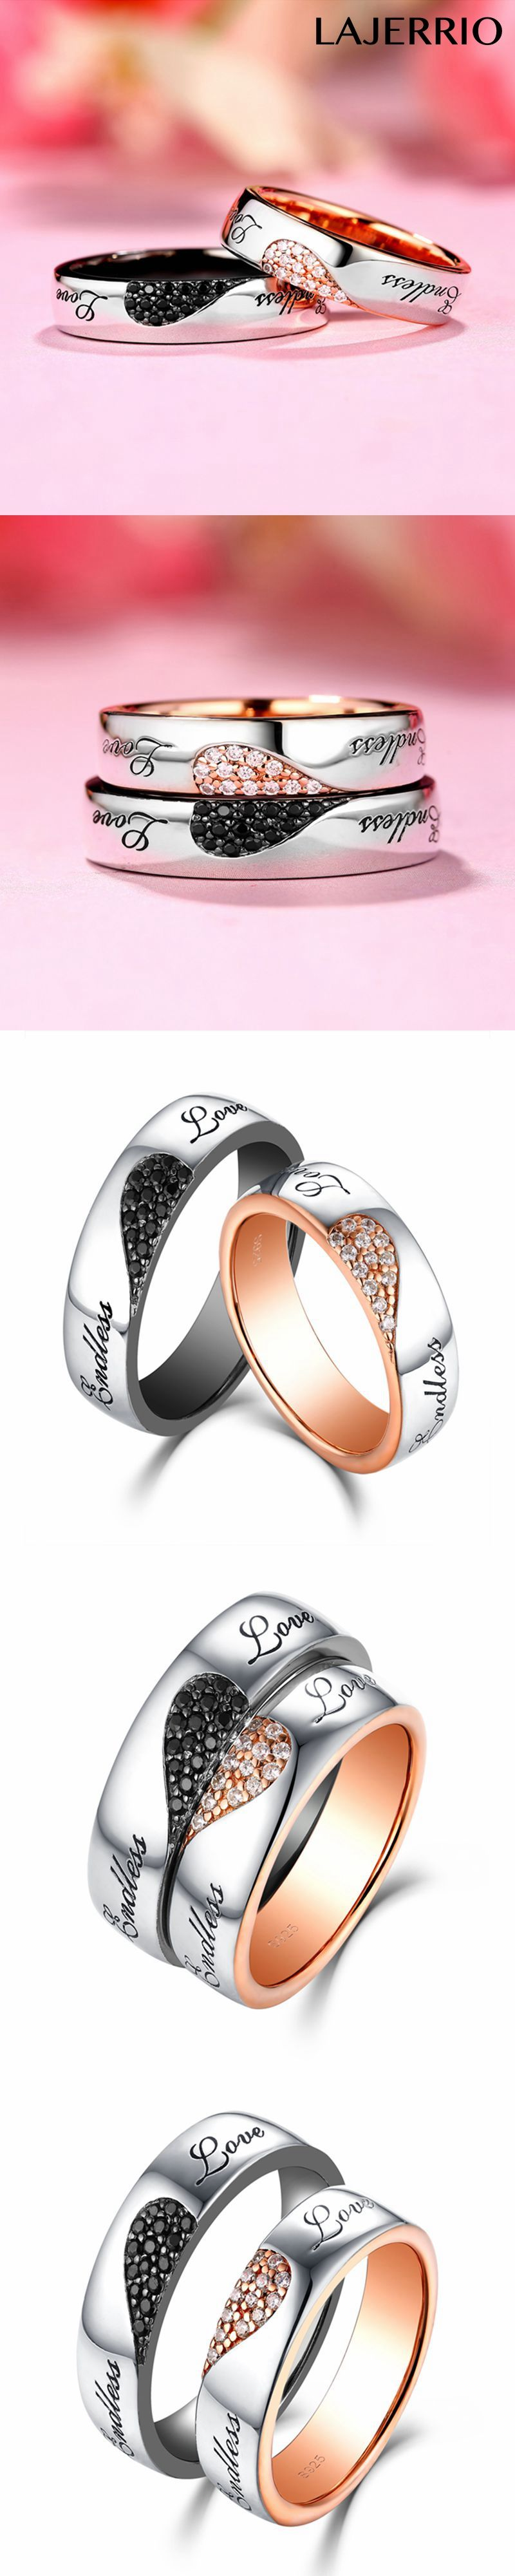 in friends gifts best series silver item timeless wind bow bands wedding jewelry women s fashionable from endless rings love